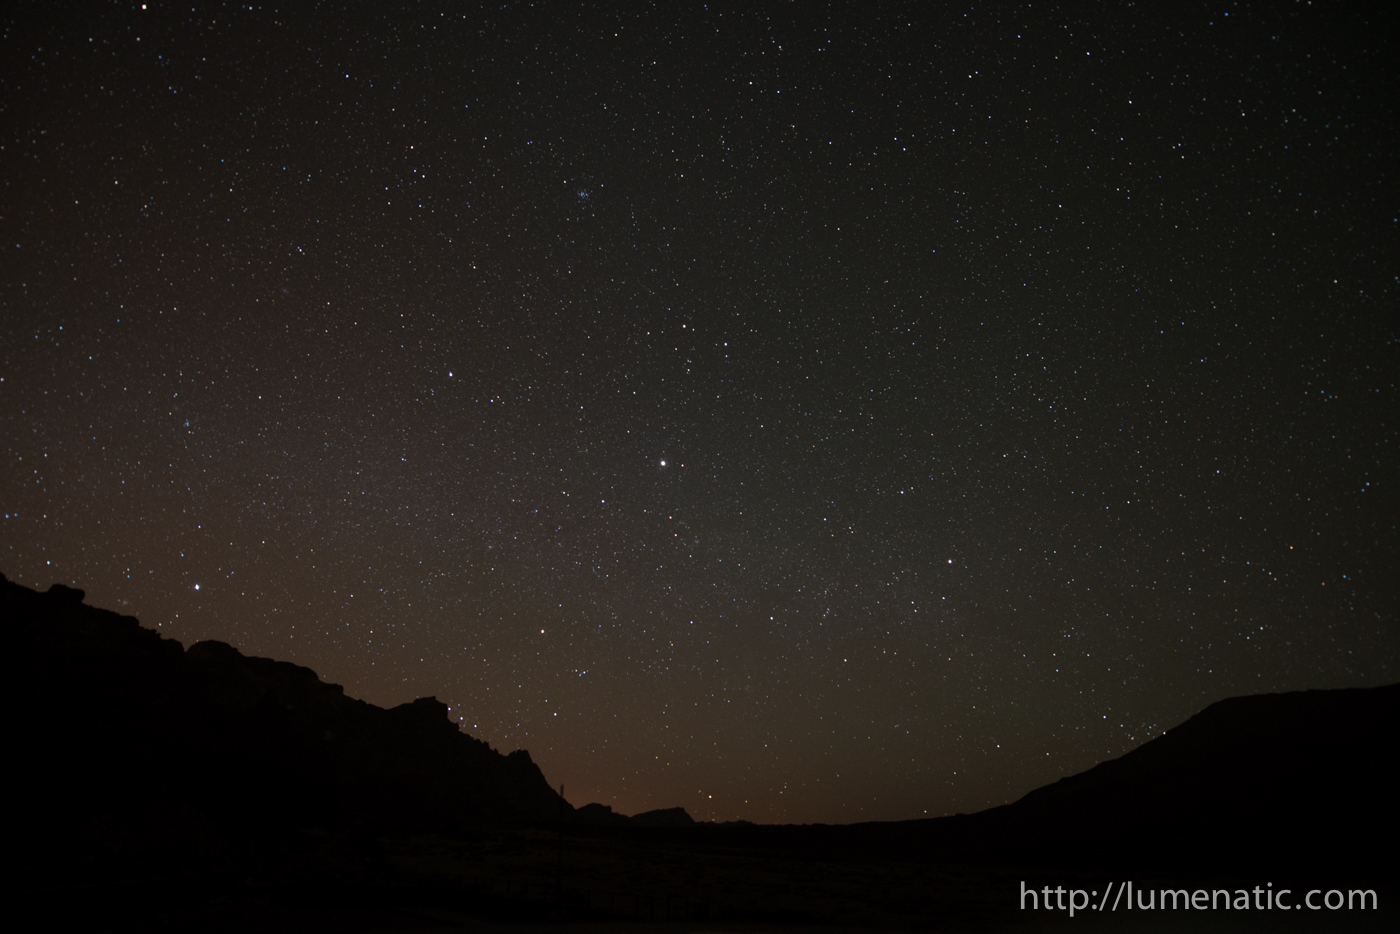 Nighttime photography – alone in the crater